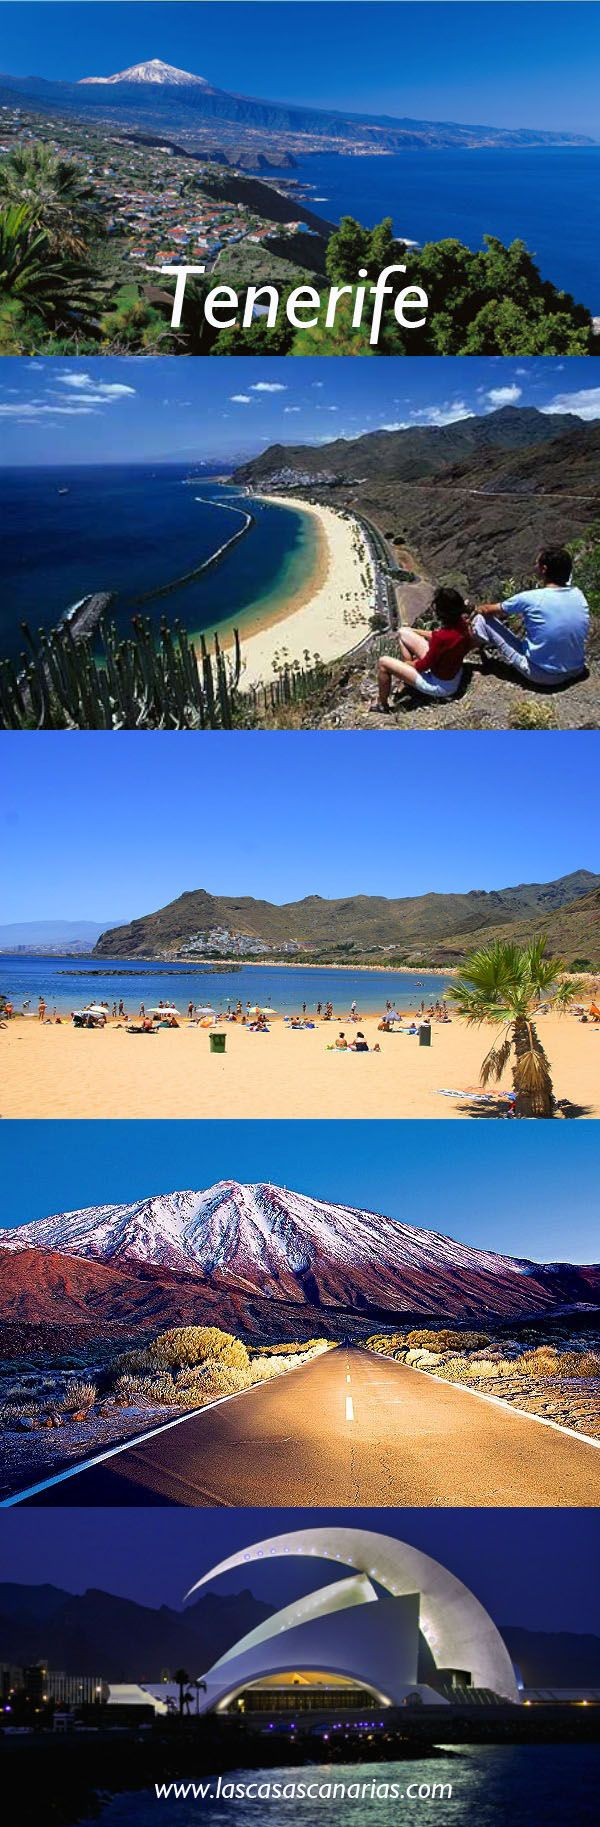 The beautiful island of Tenerife, Canary Islands